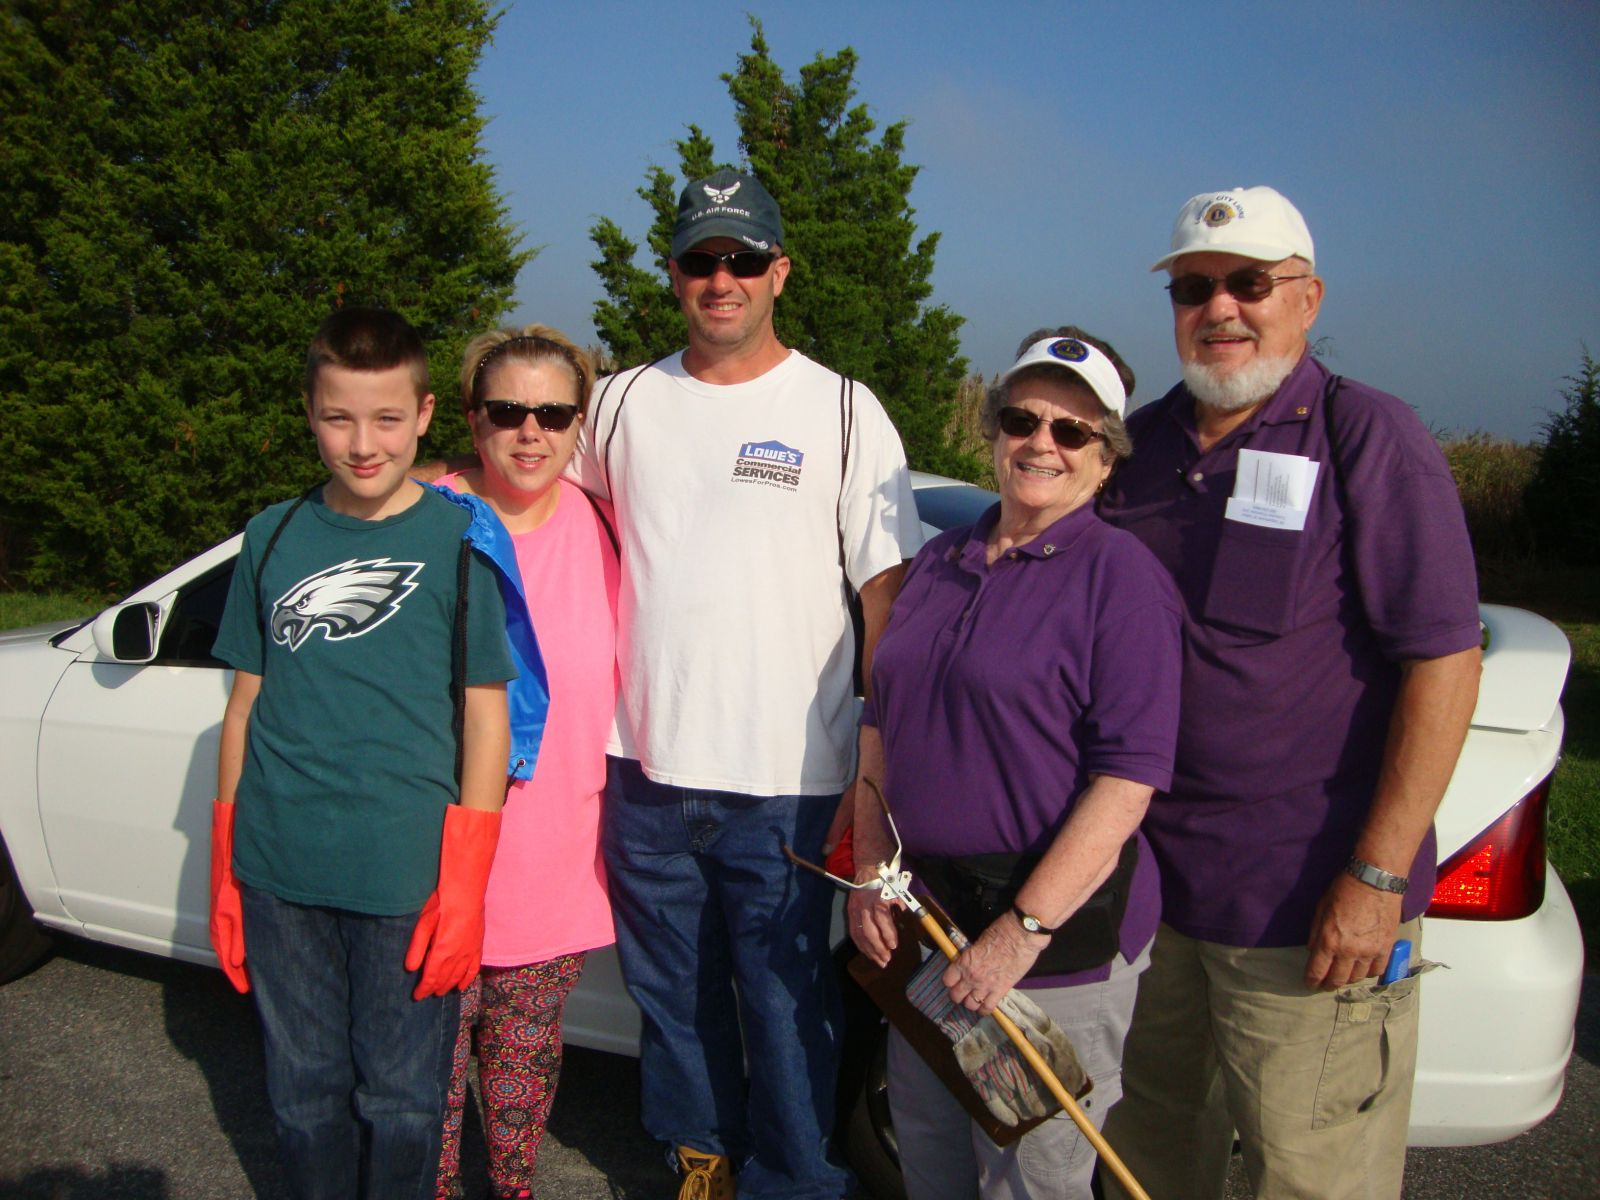 The Capitol City Lions members assisted the coastal cleanup on 16 September 2017 at Pickering Beach.  It was an enjoyable day spent working on a beach ingreat weather for a worthwhile project.  From left, Chad Martin, Lions Vickie Martin, Steve Martin, Joyce Damask and Warren Fairess.